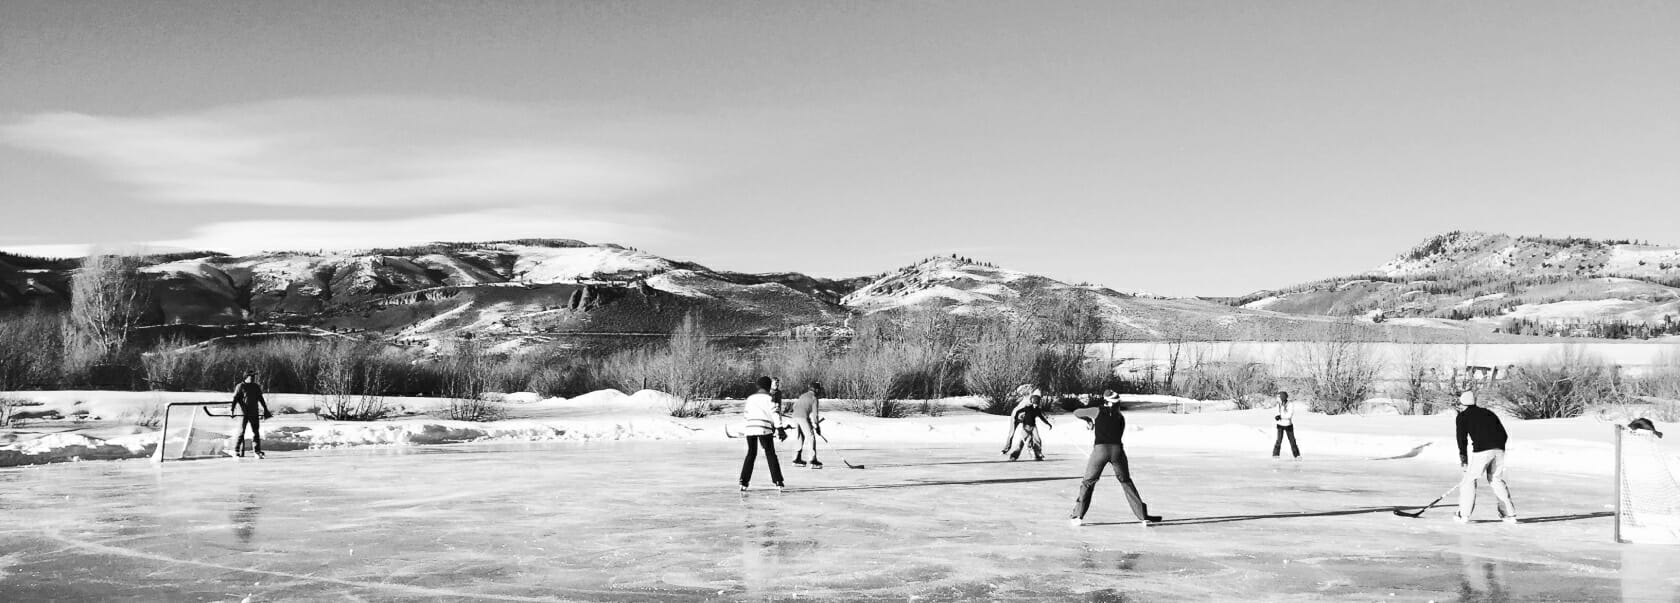 Old photo of people playing hockey on a frozen pond